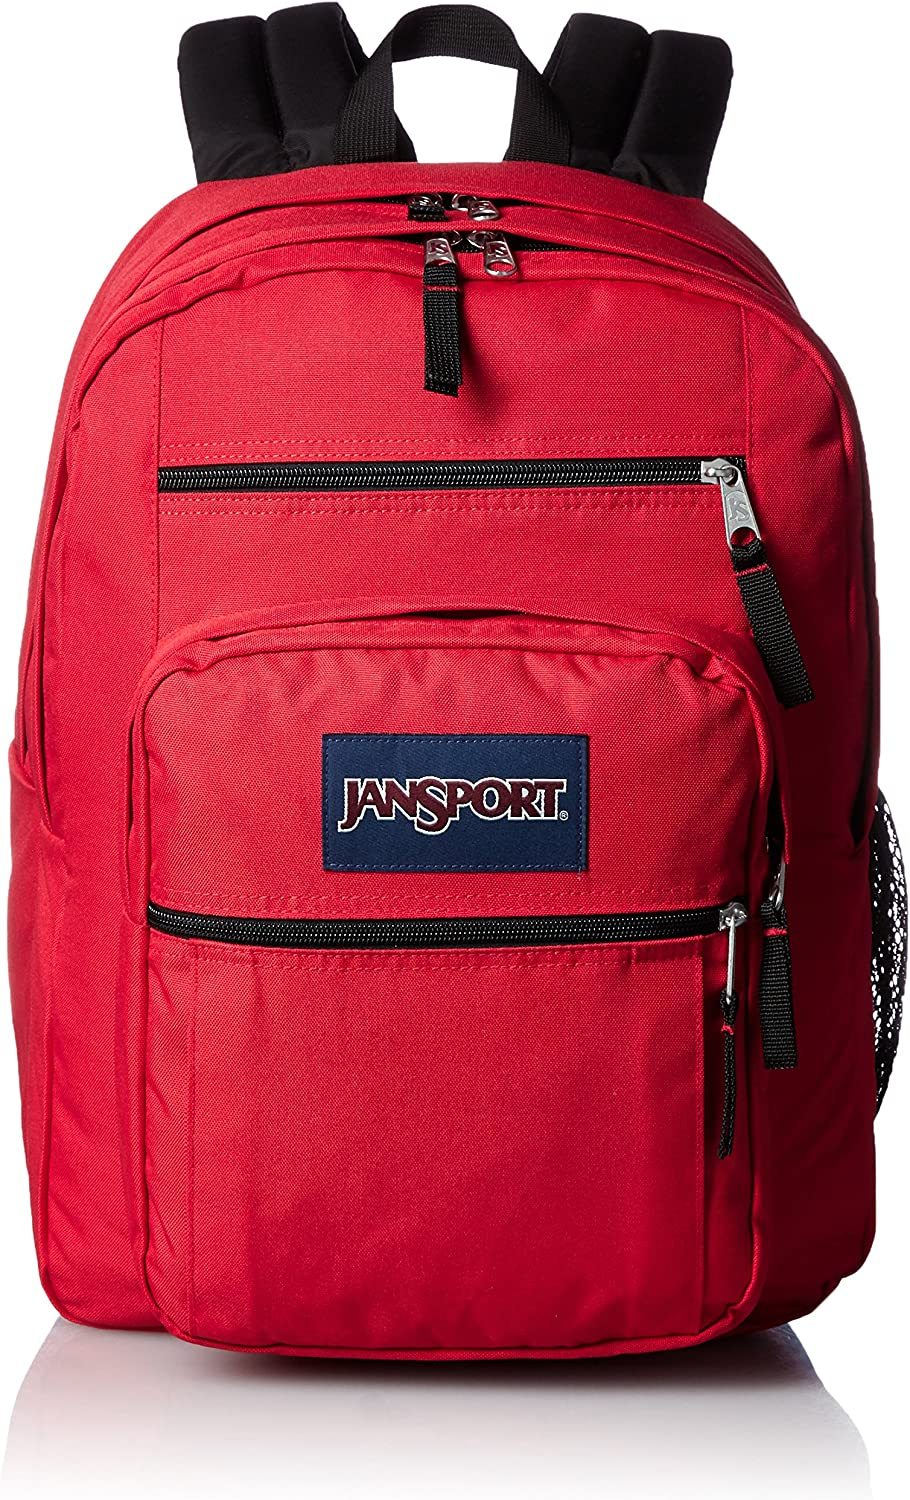 JanSport Rucksack Big Student, red tape, 43x33x25, 34 liters, TDN7